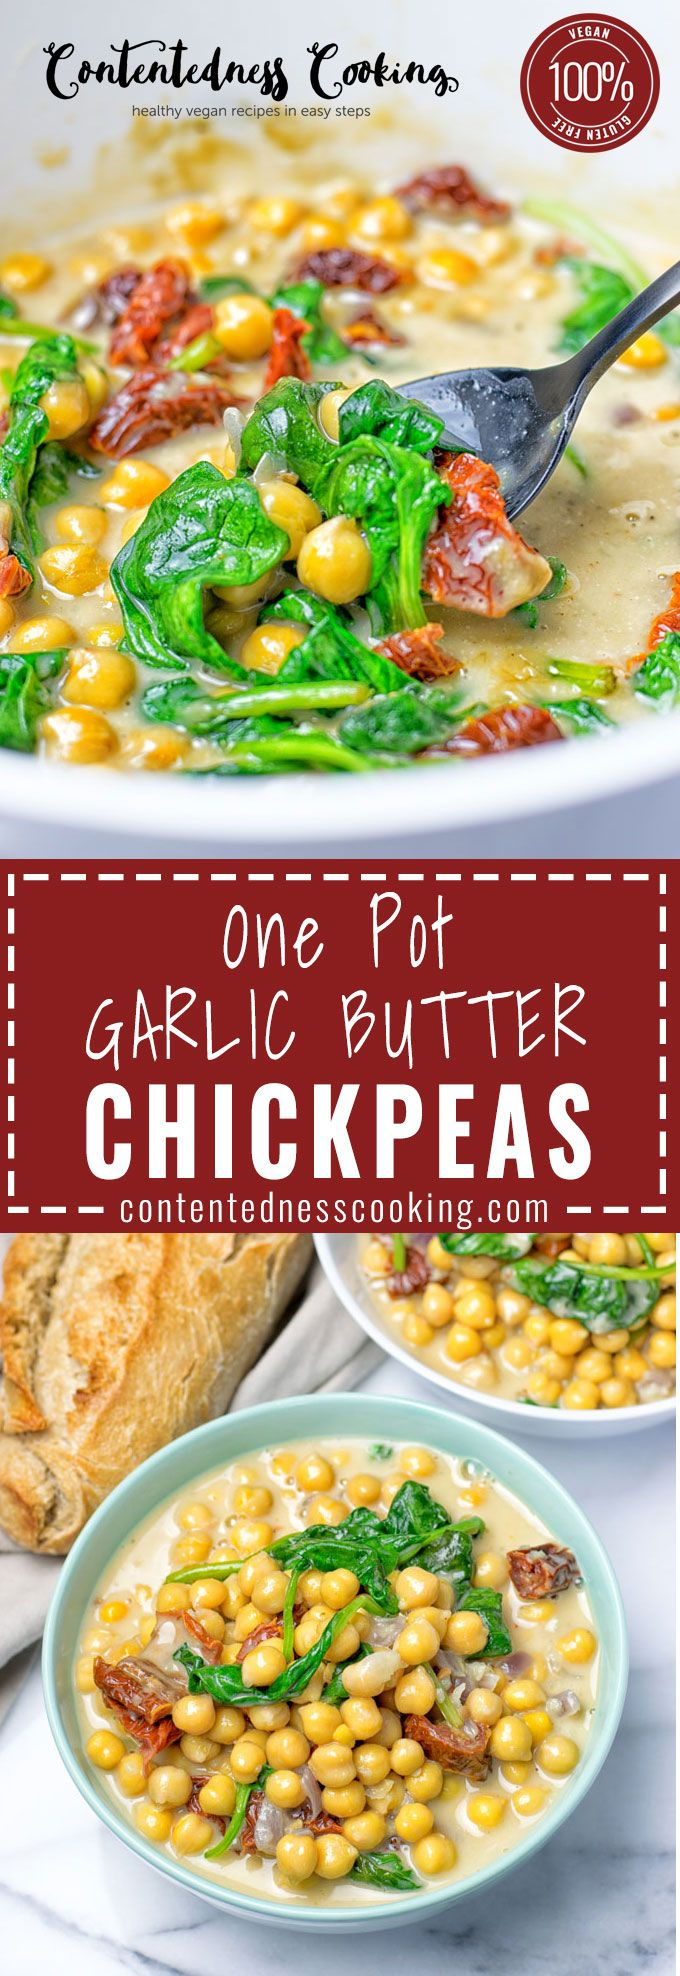 One Pot Garlic Butter Chickpeas are  vegan, gluten free and made in one pot. Made with cacao butter, oat cream, and spinach this is the perfect choice for an incredibly easy and delicious dinner or lunch. Believe me, I've never before tasted something so rich and creamy, while being make with wholesome plant-based ingredients only, enjoy!